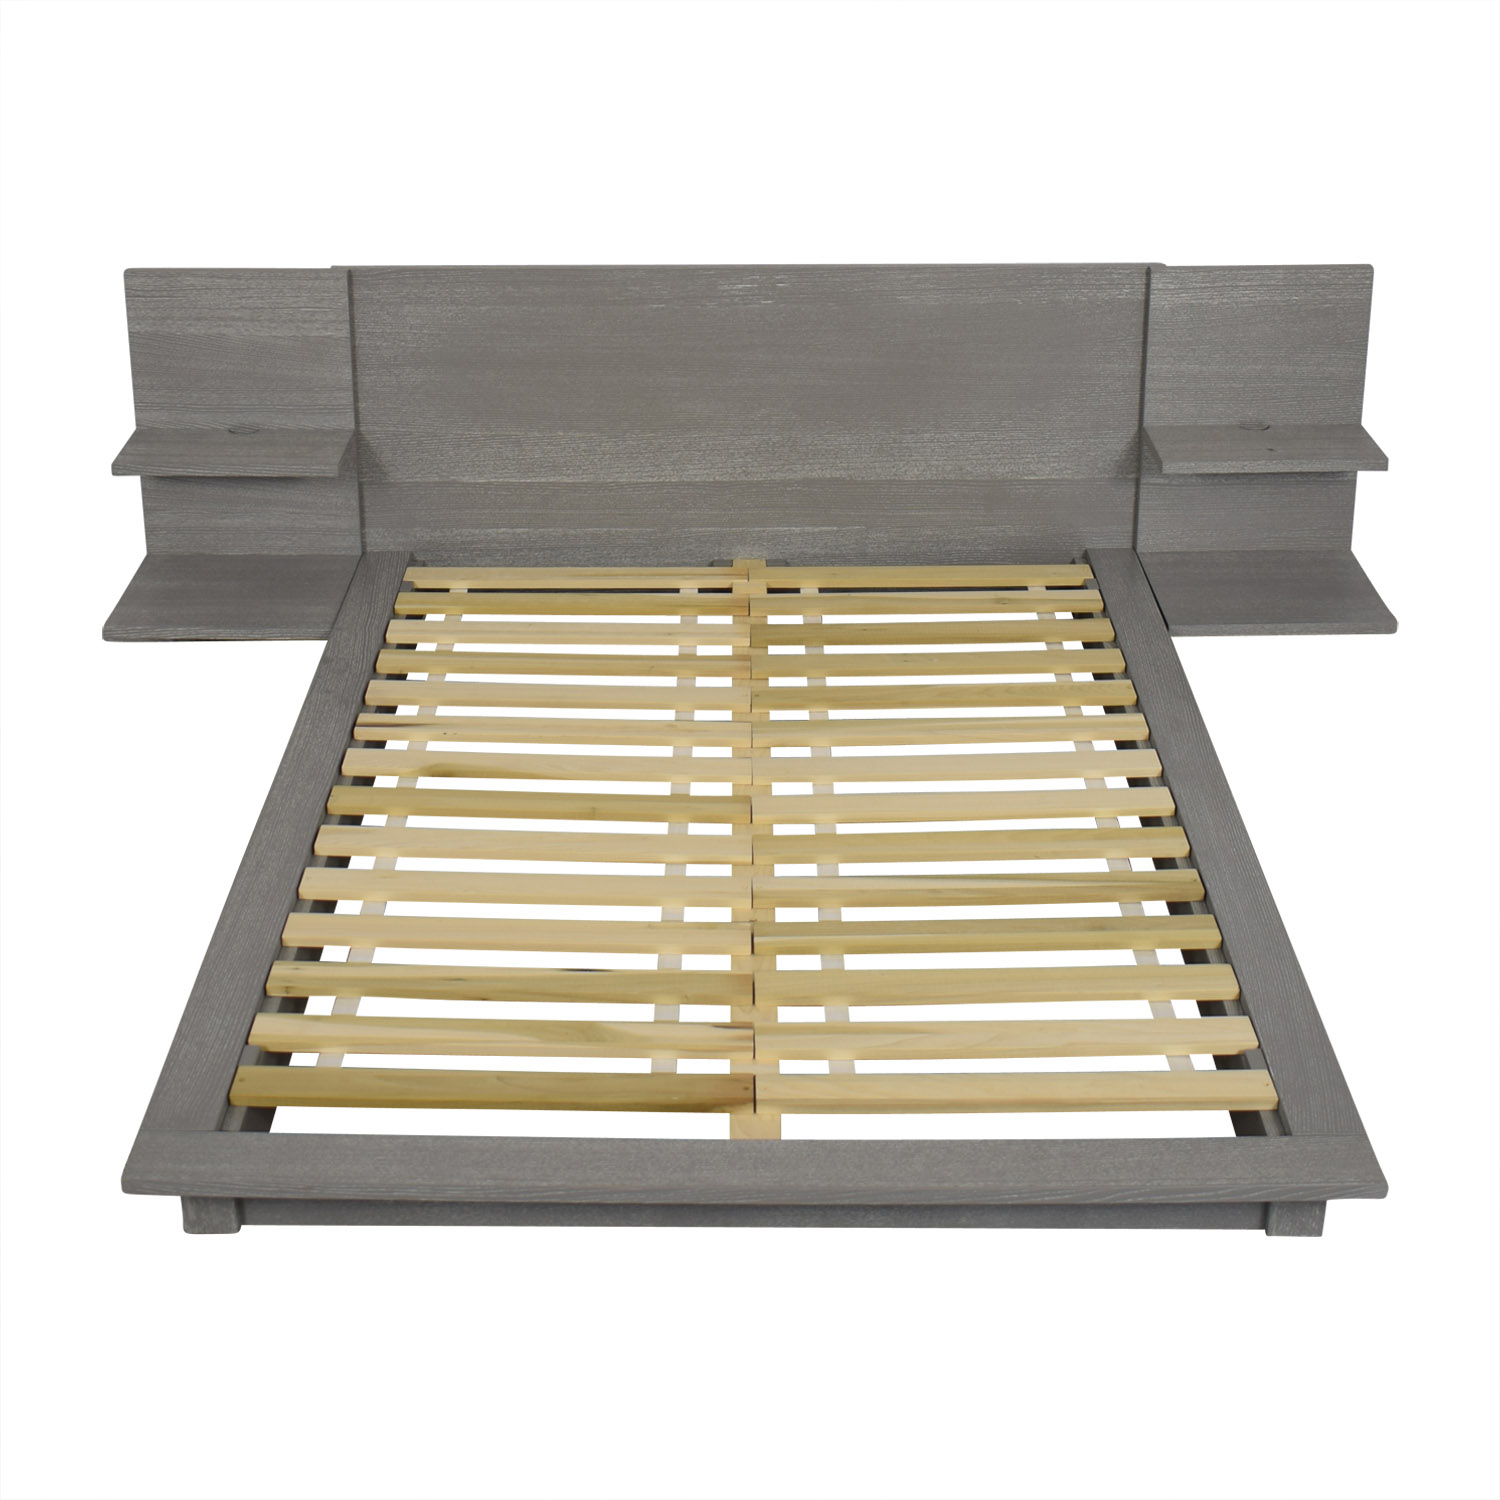 CB2 CB2 Andes Grey Queen Bed Frame for sale